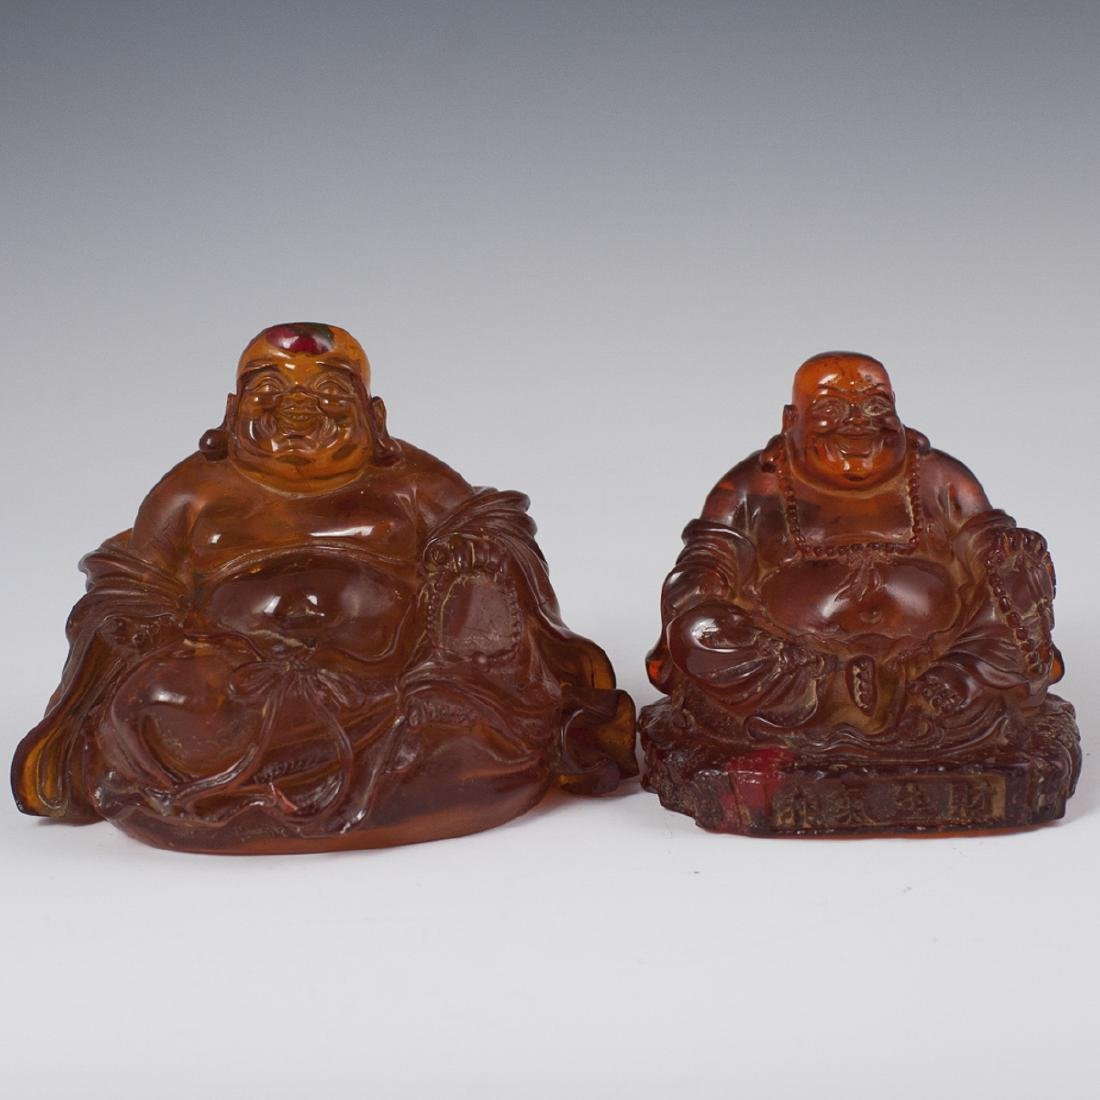 Carved Chinese Amber Laughing Buddhas